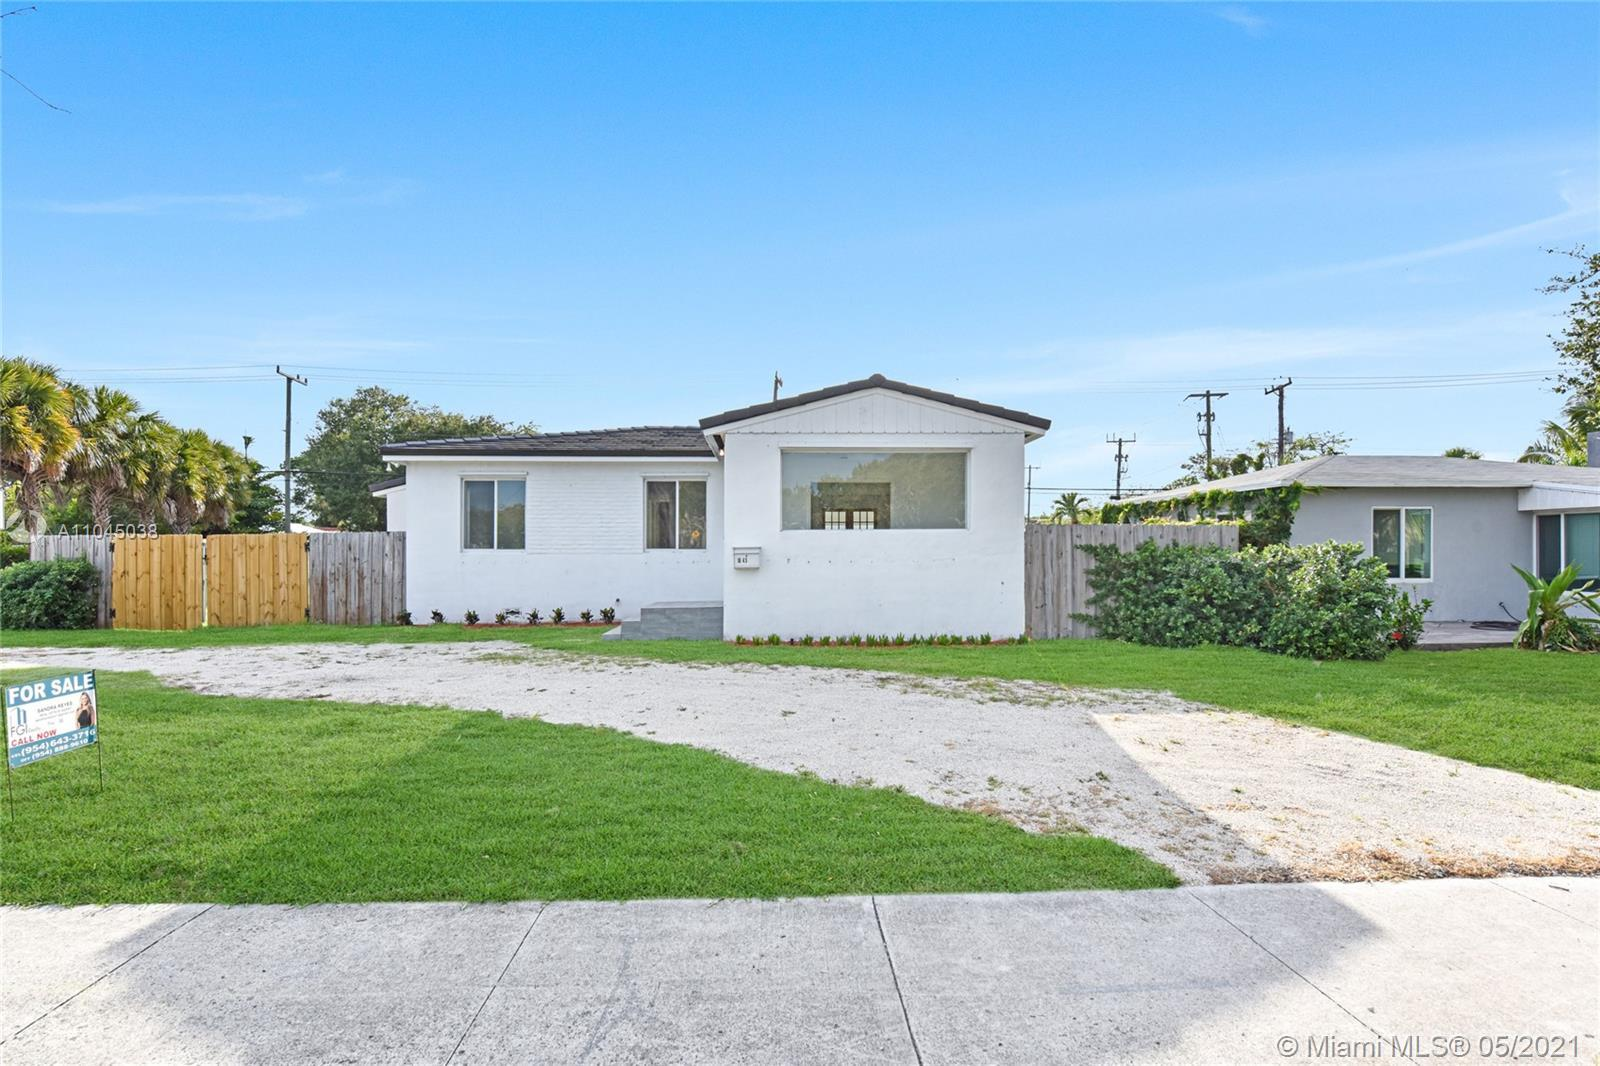 Totally remodeled, 1,388 sq feet under A/C. corner house in the heart of Croissant Park, brand NEW R